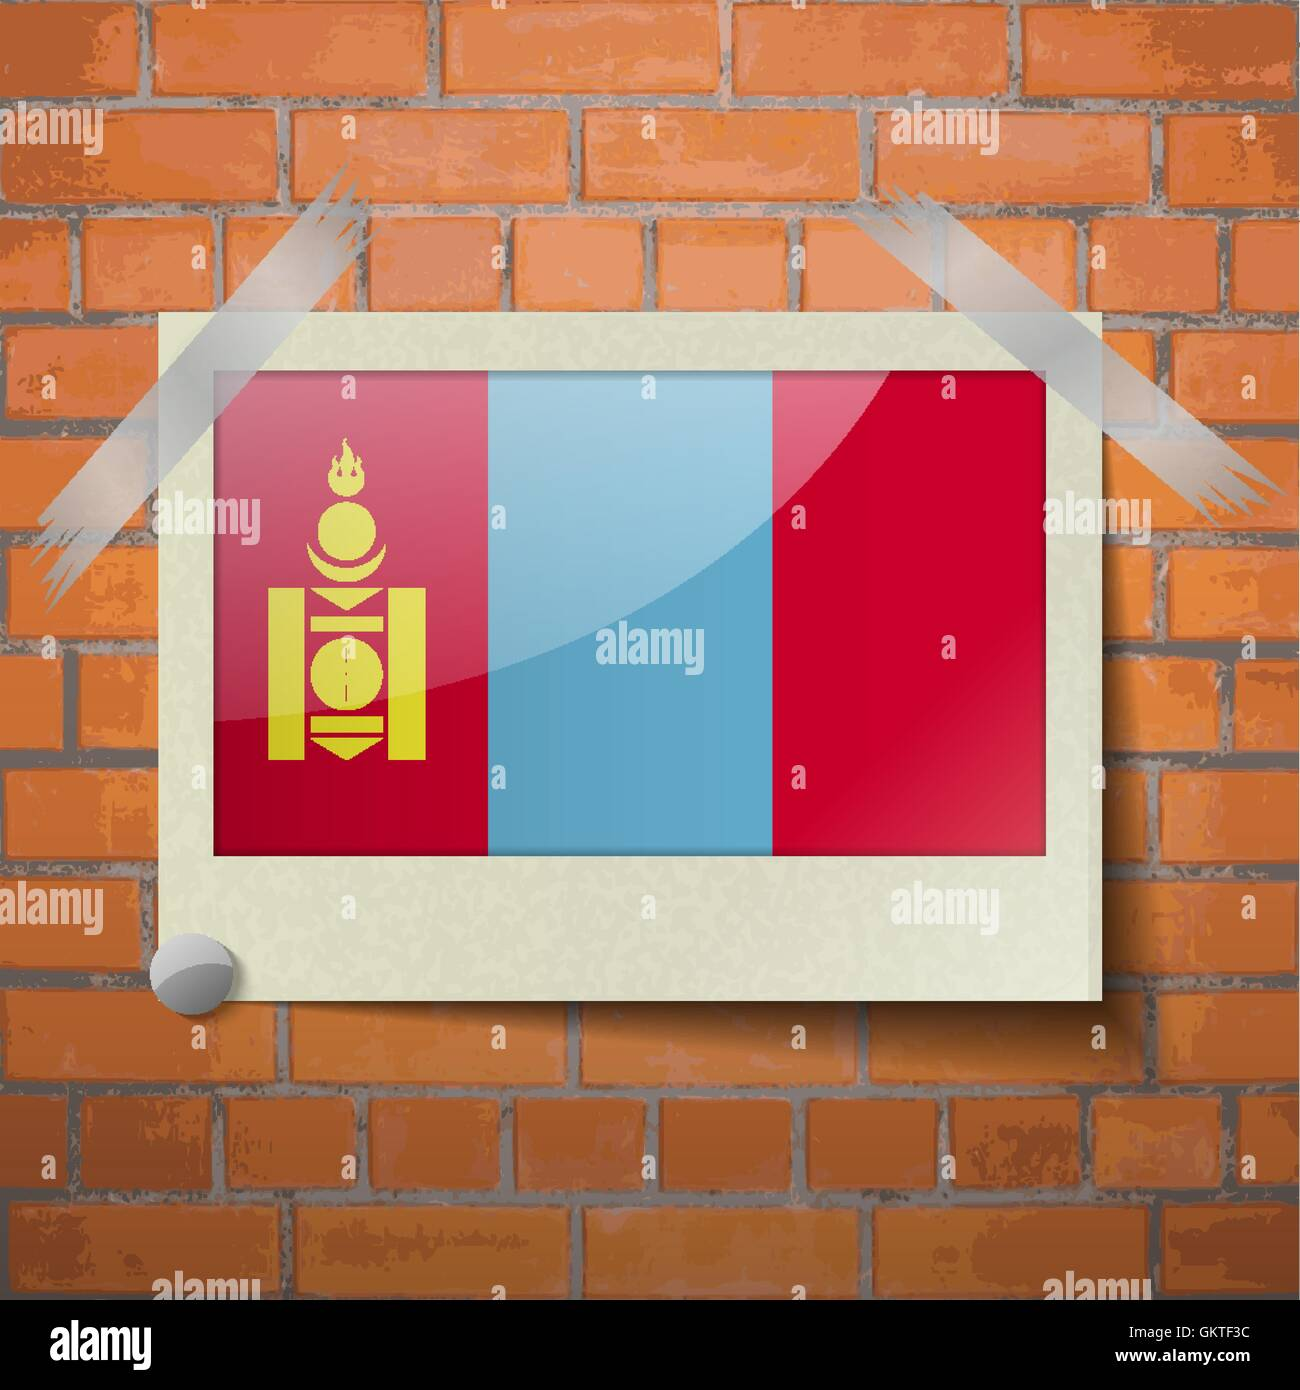 Flags Mongolia scotch taped to a red brick wall - Stock Vector